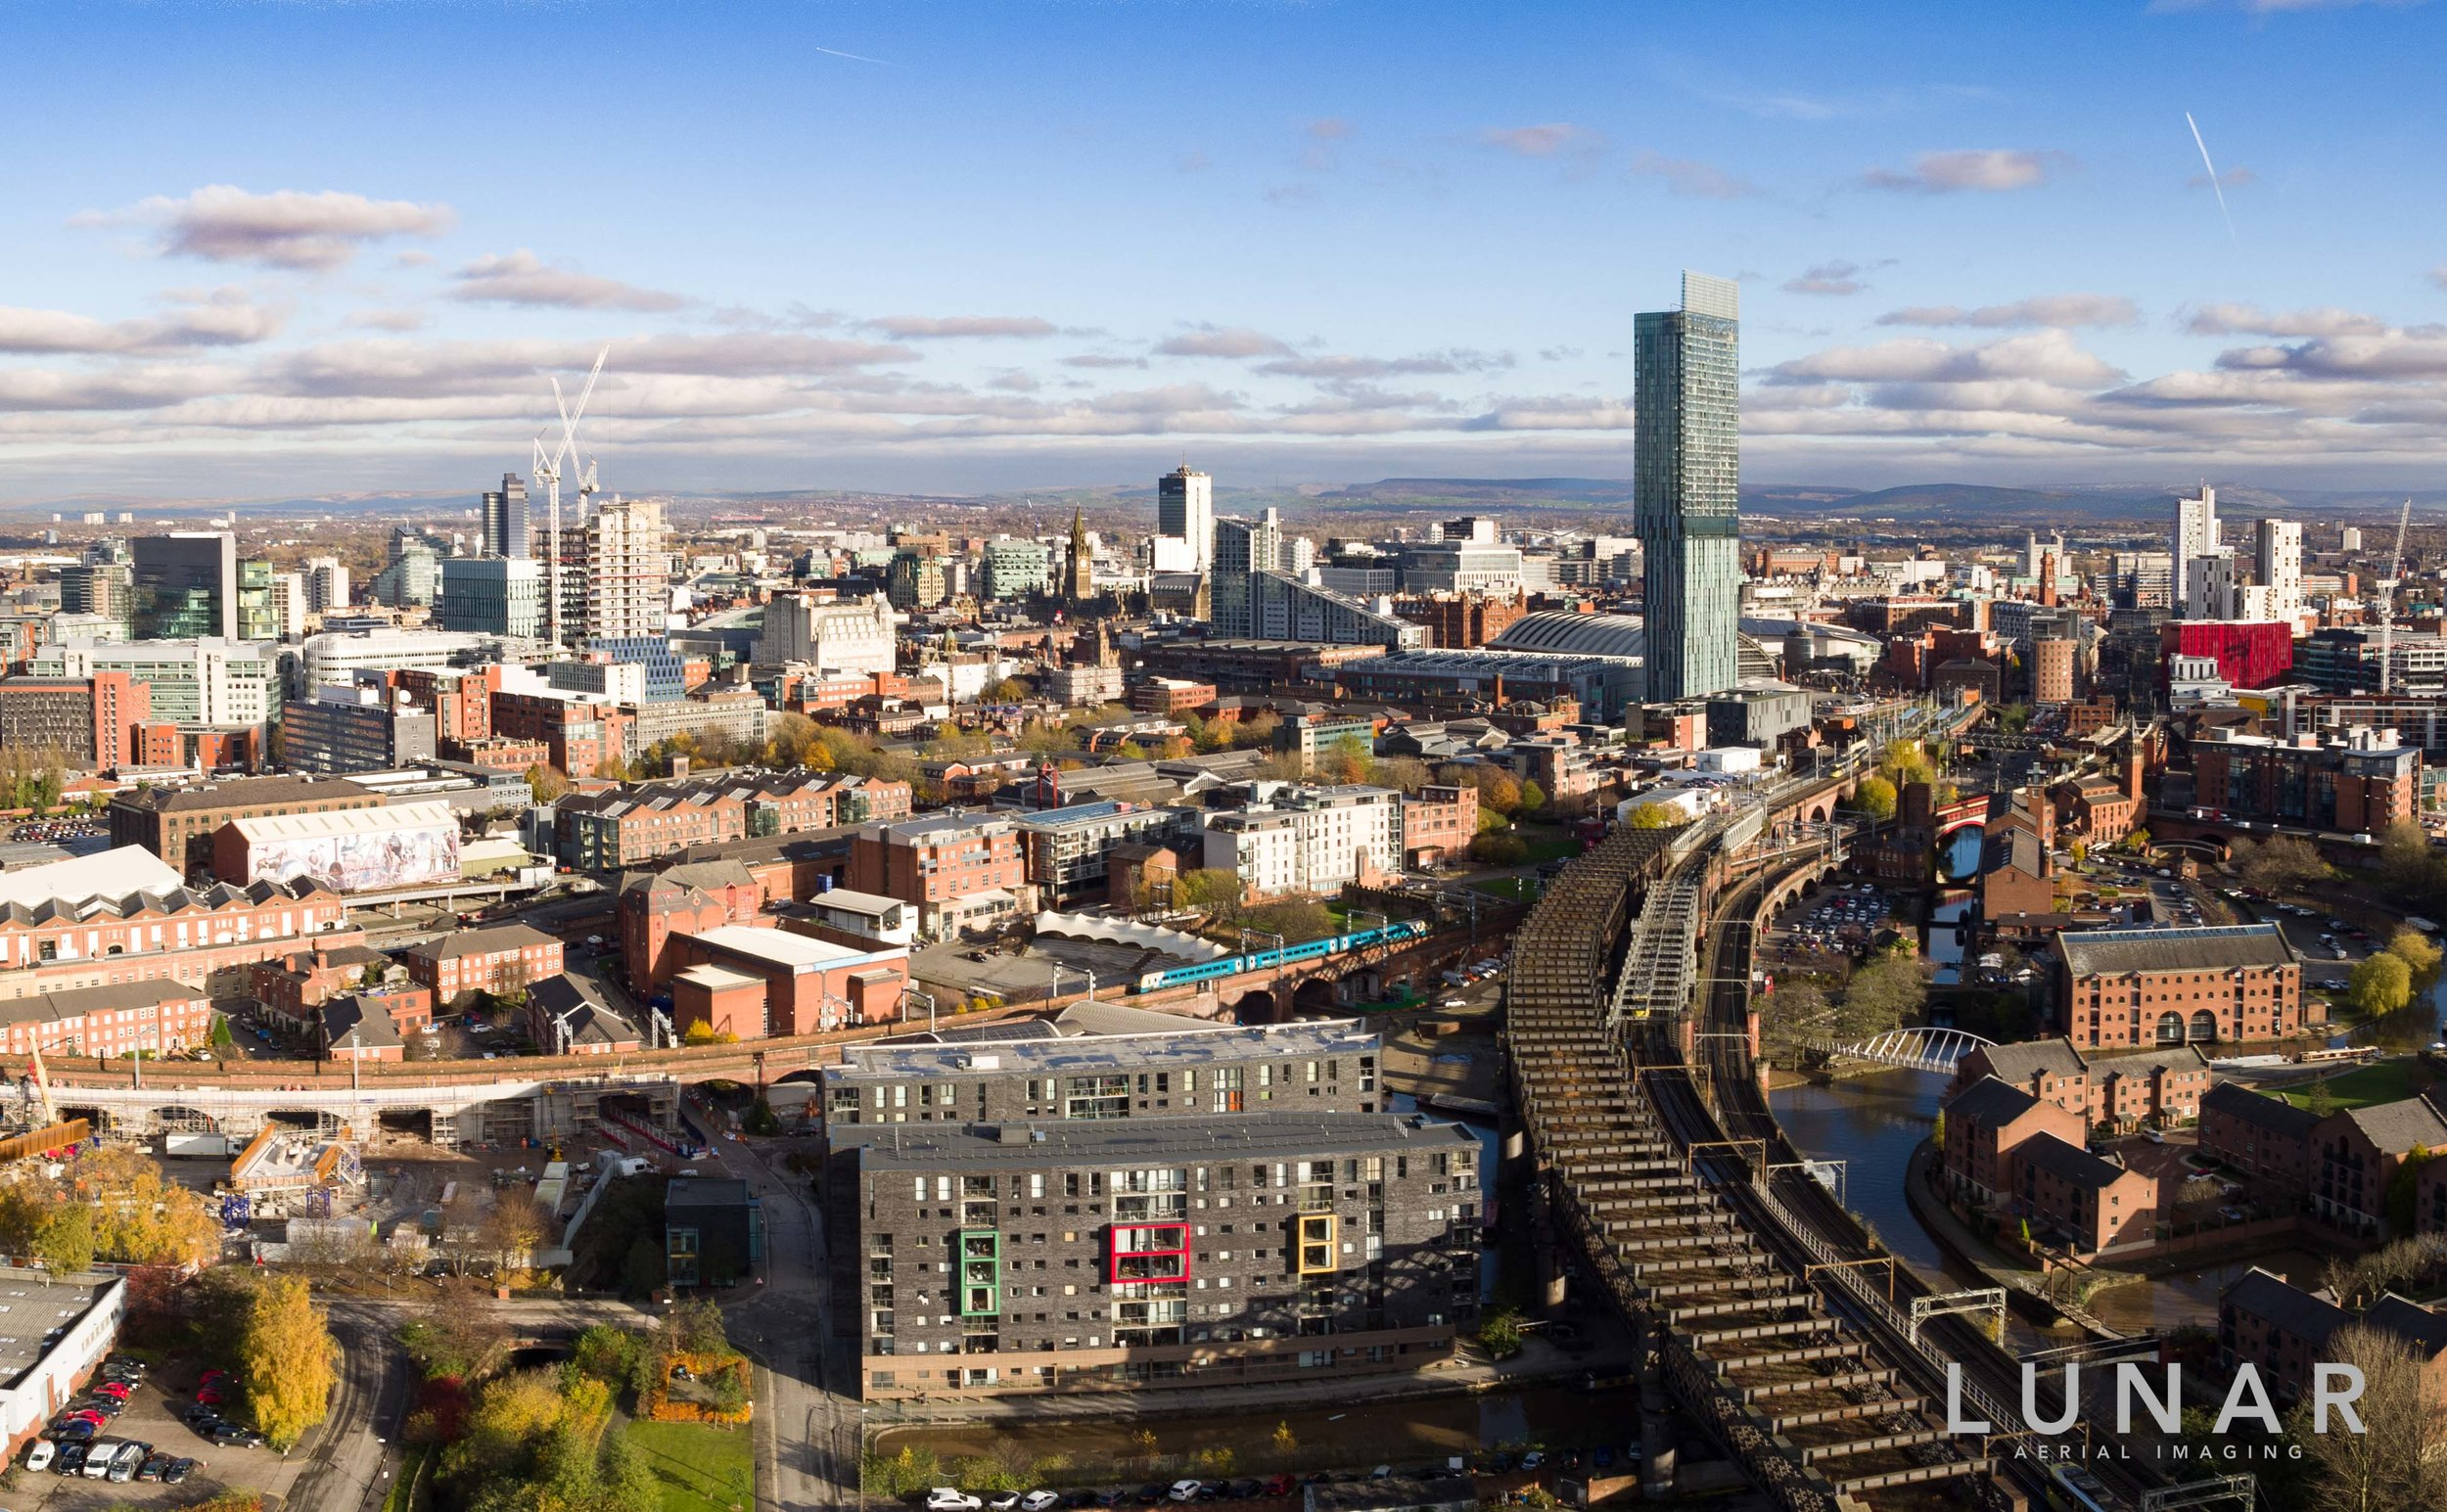 Looking over Manchester train network with cityscape